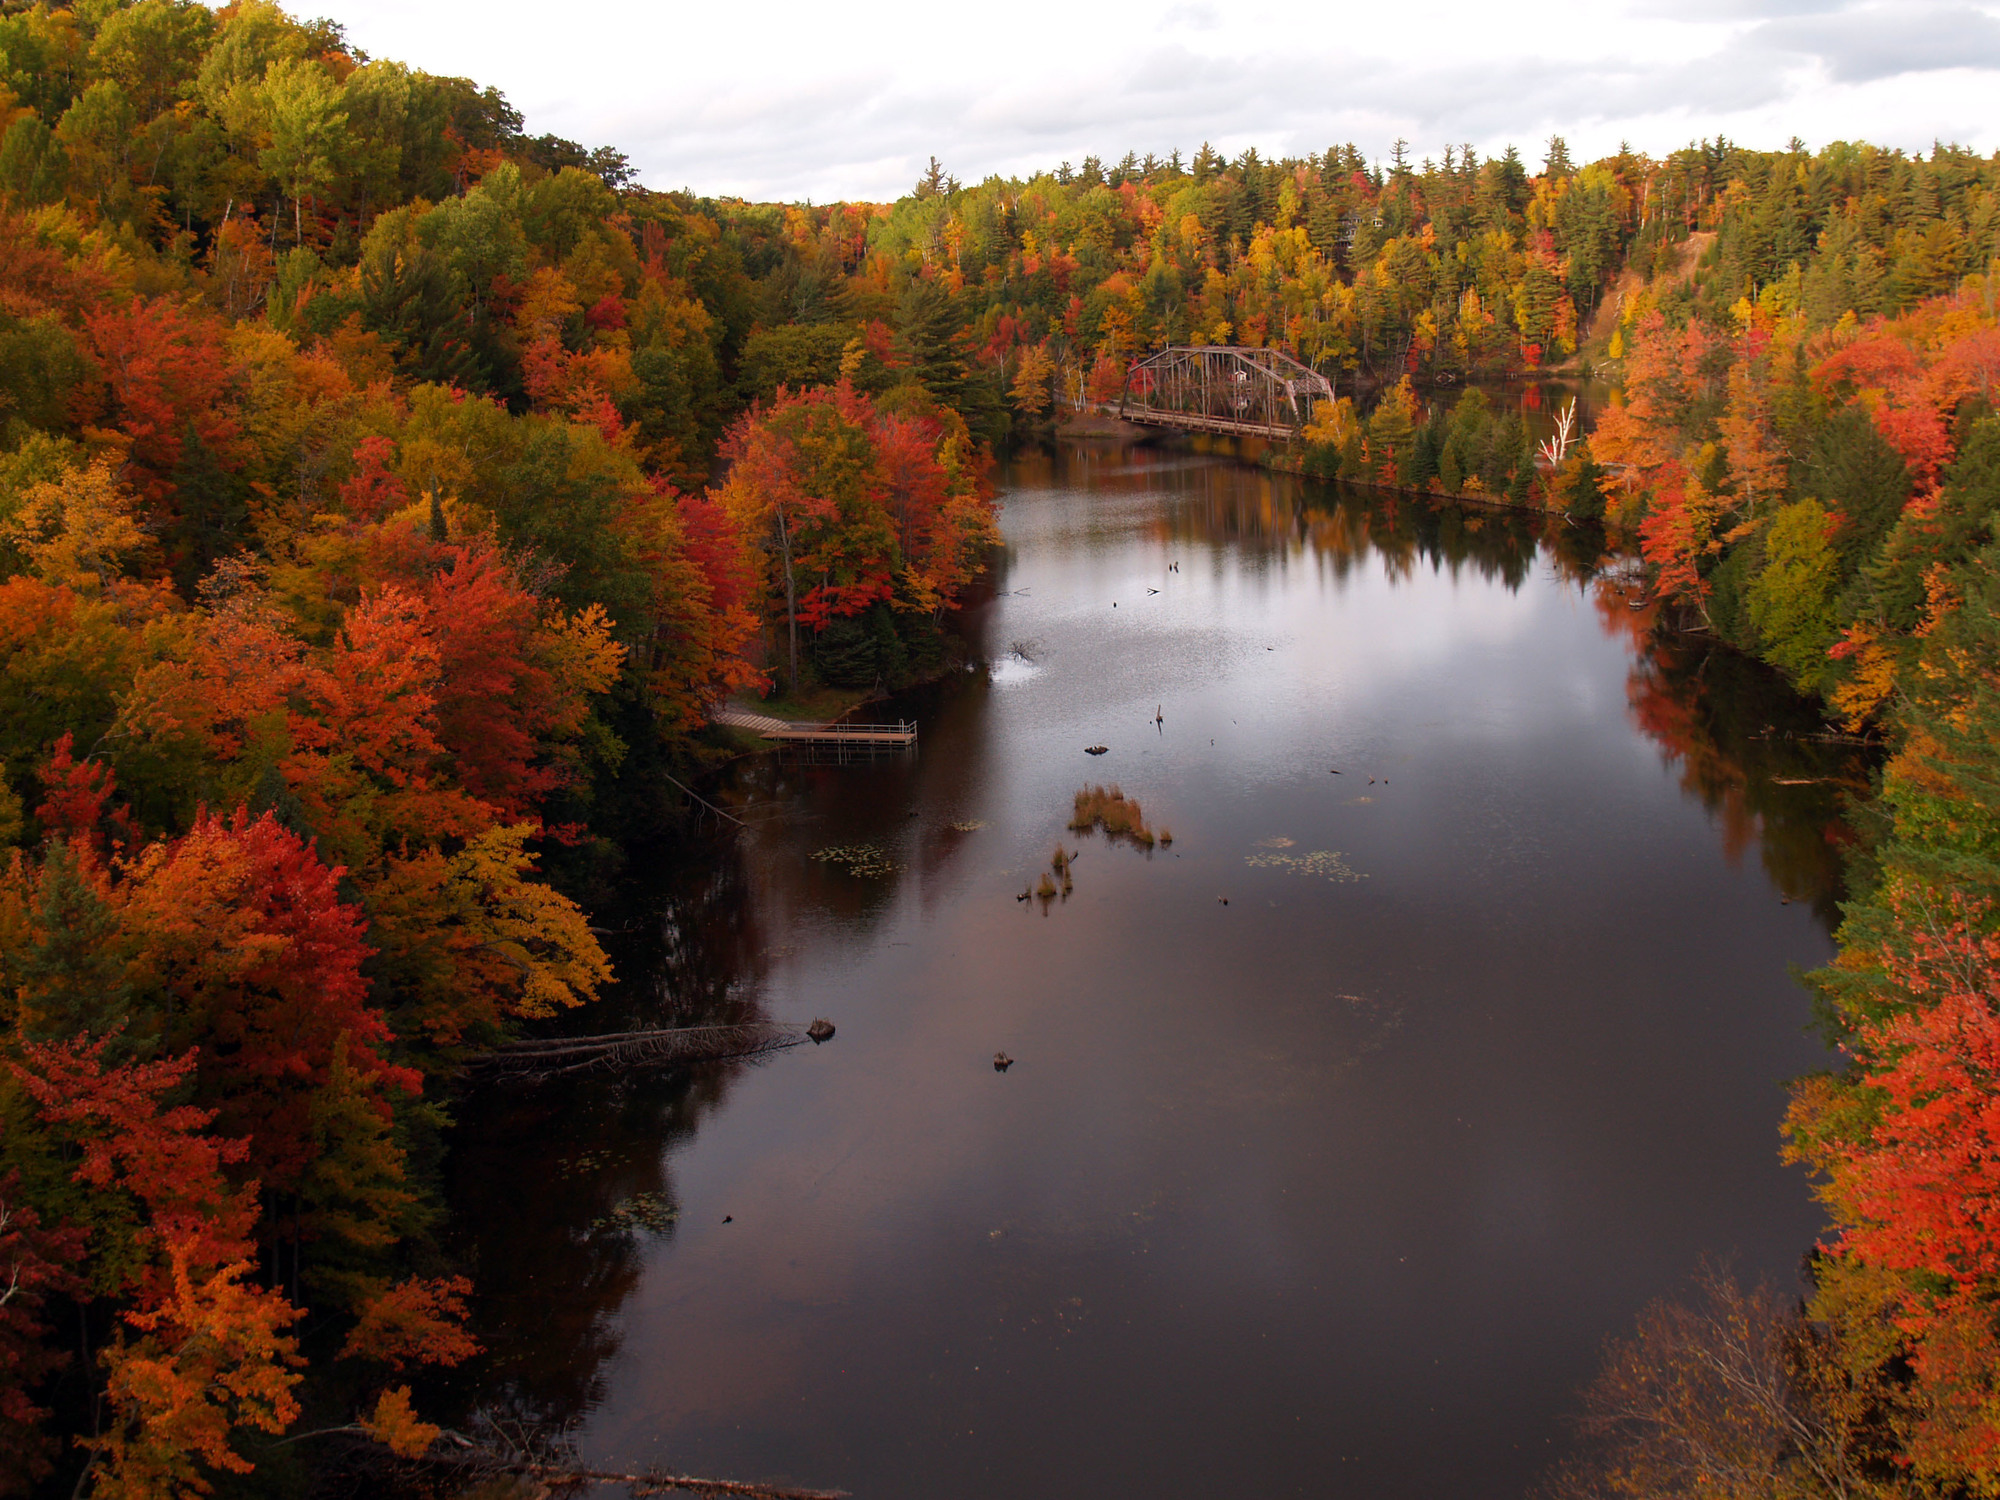 A beautiful fall color view of the Dead River in Marquette County from a bridge popular with fall leaf peepers.